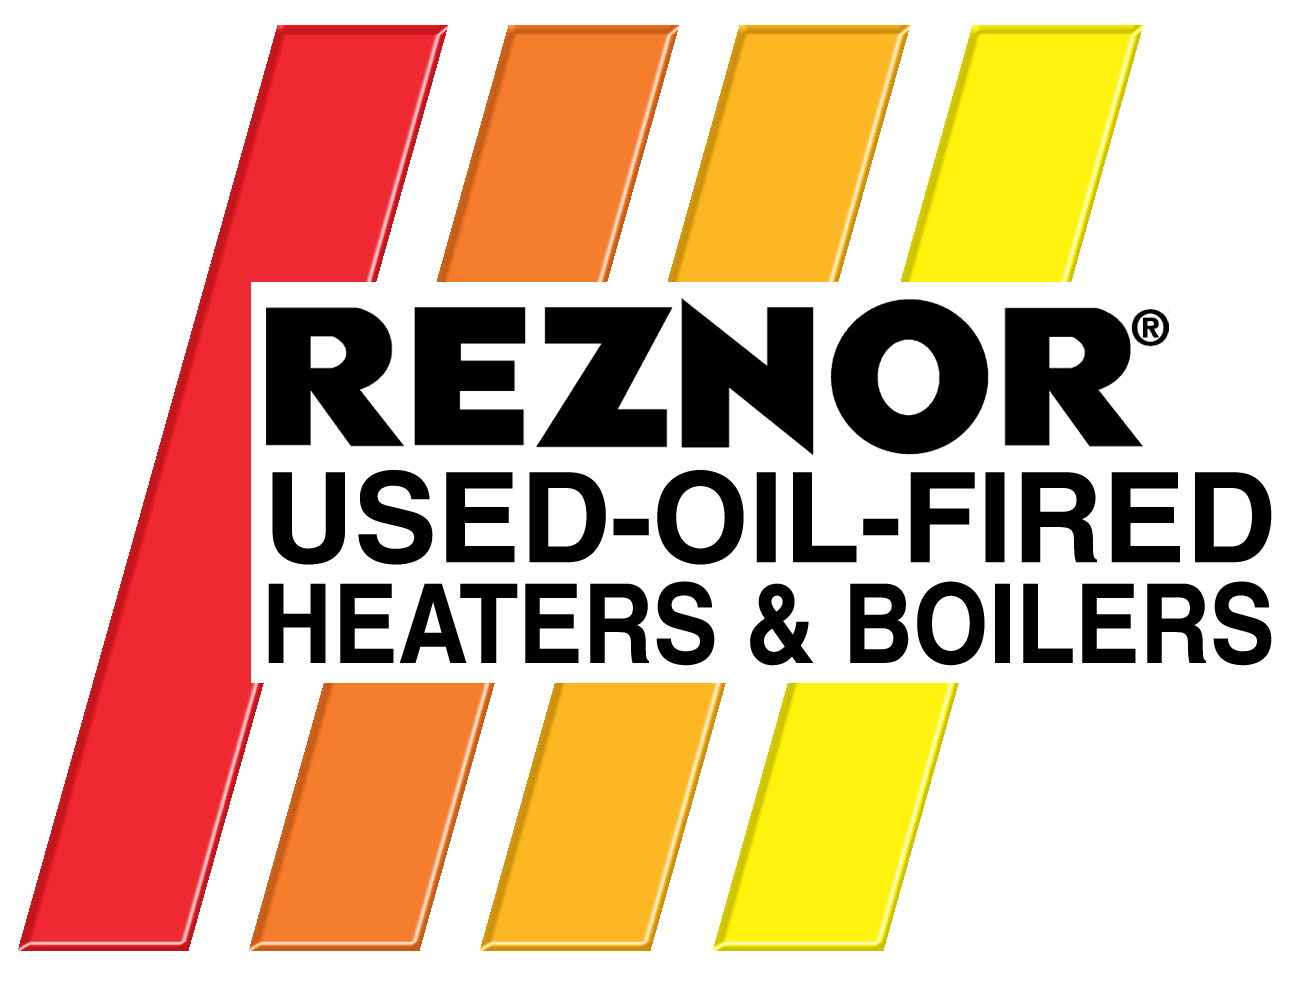 Reznor RA 150-250 Waste-Oil Heater